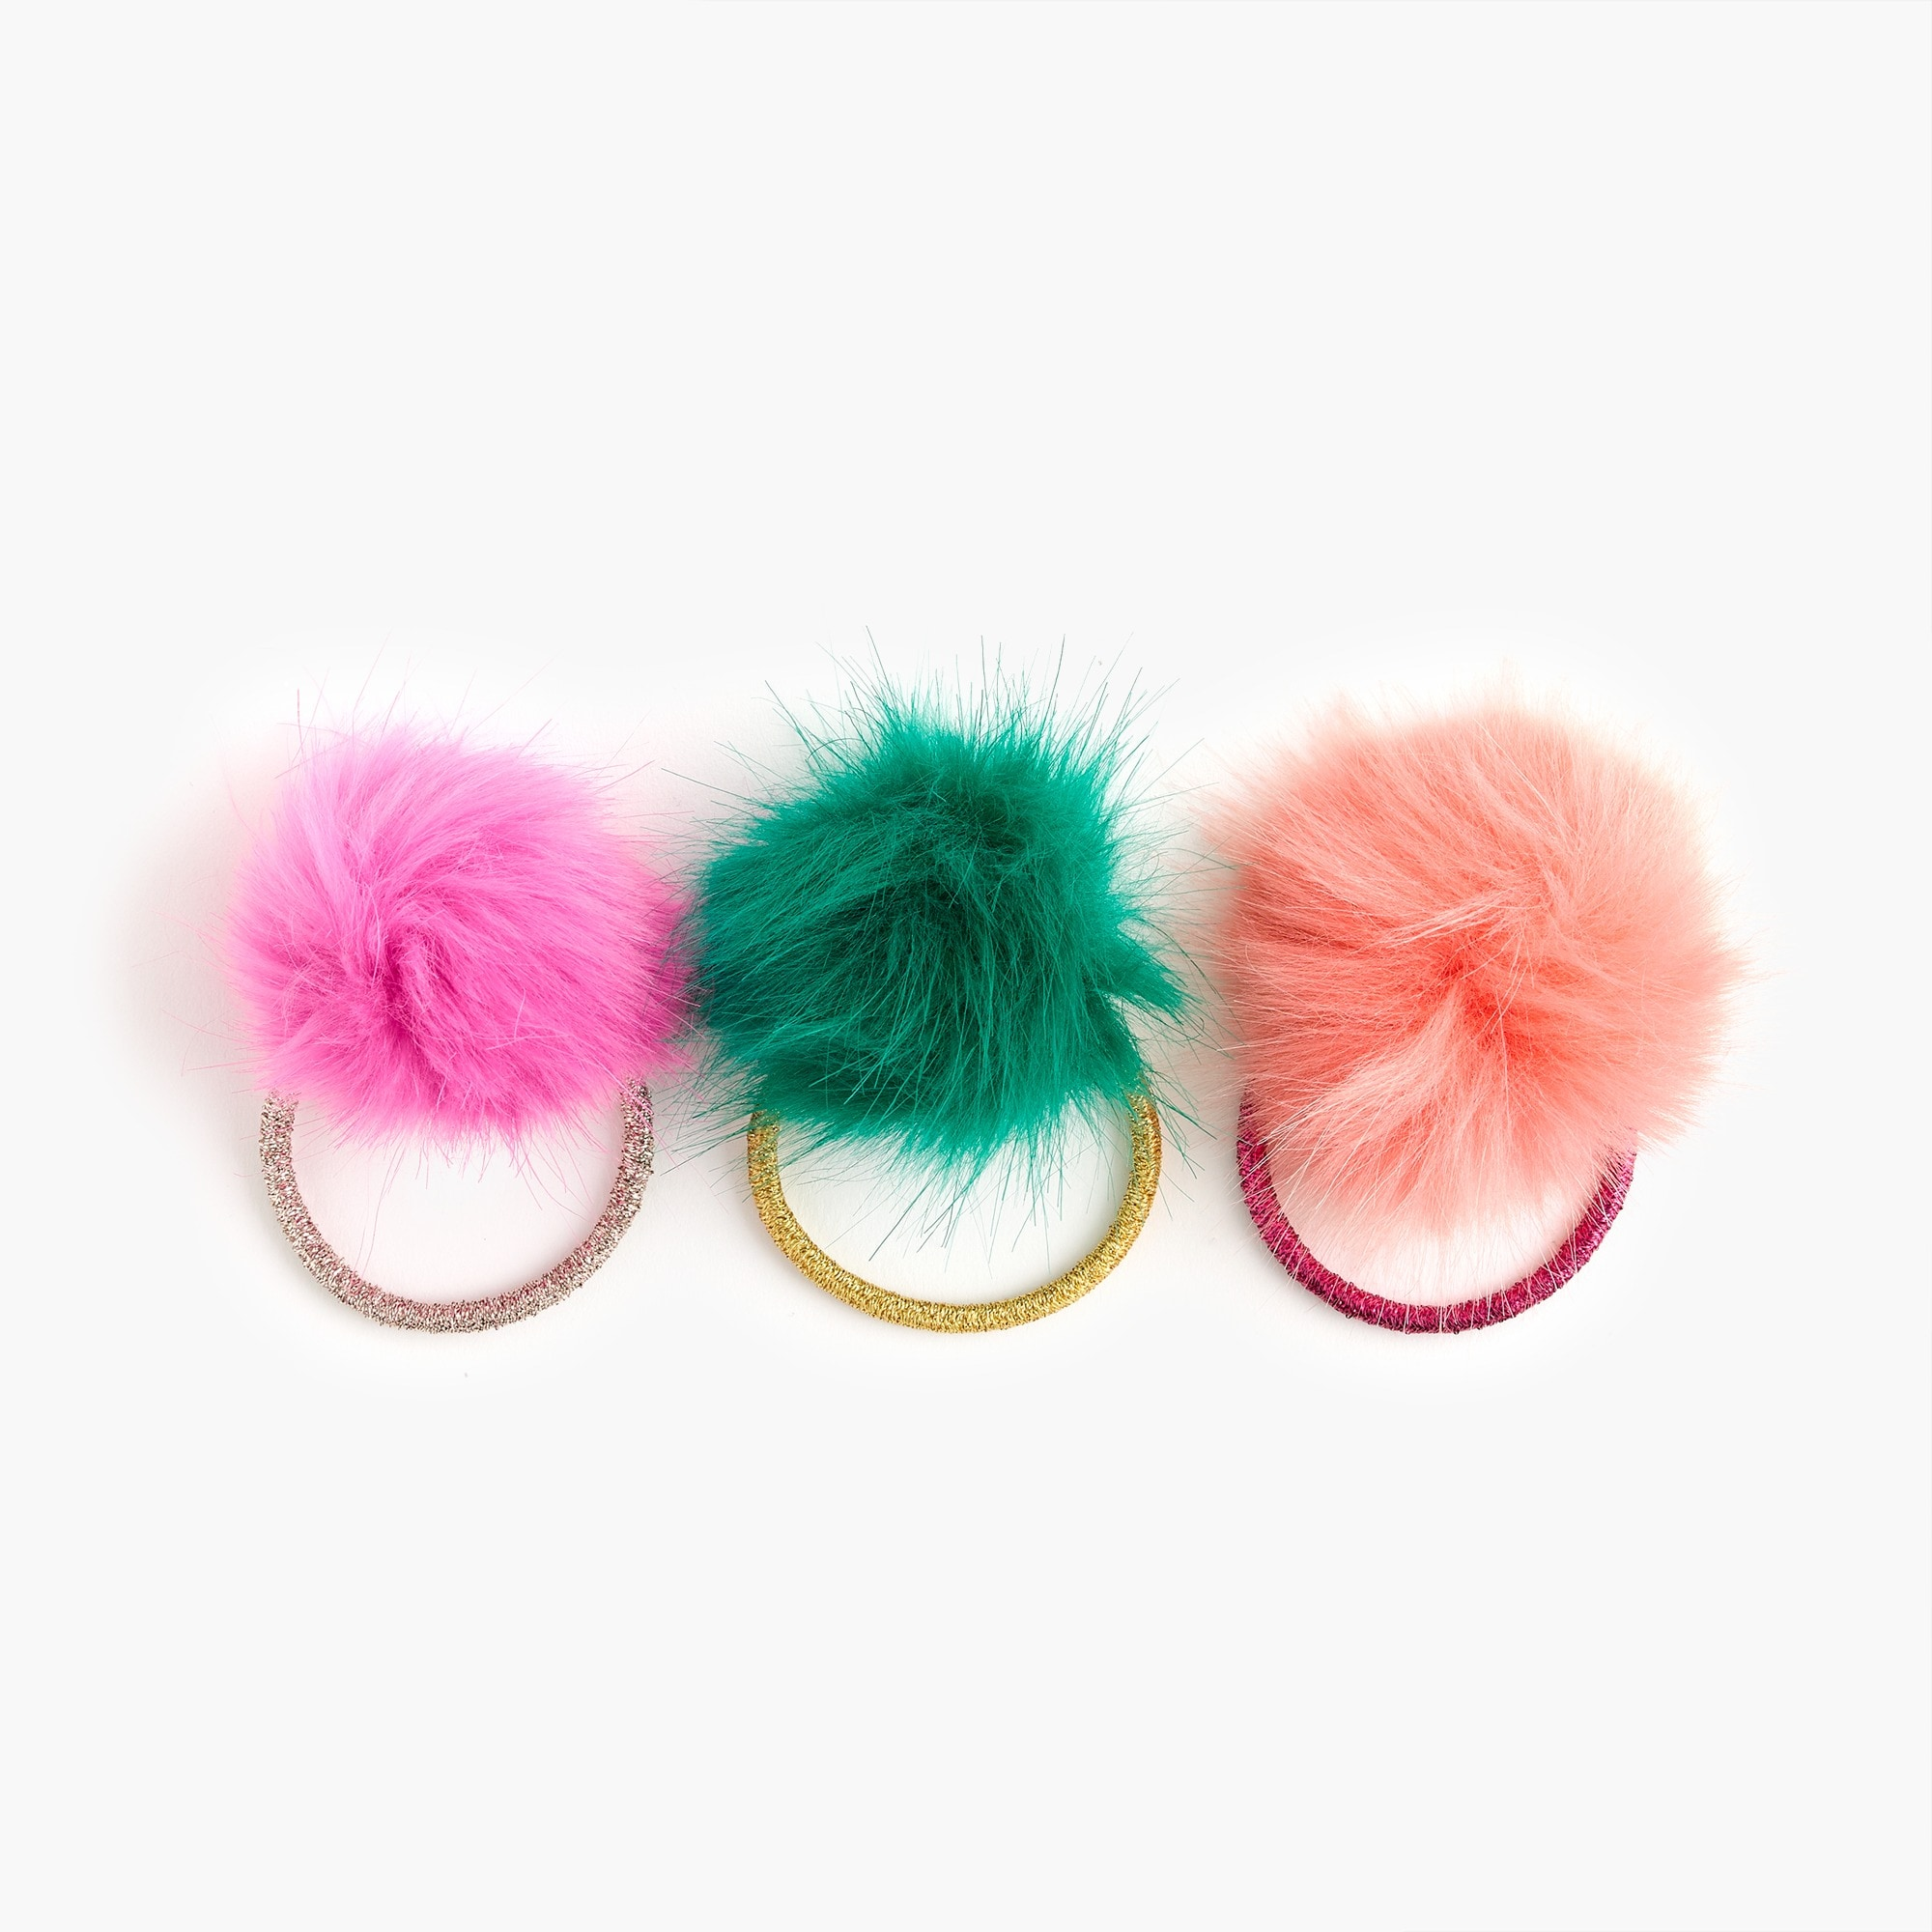 Girls' pom-pom ponytail holders three-pack girl jewelry & accessories c